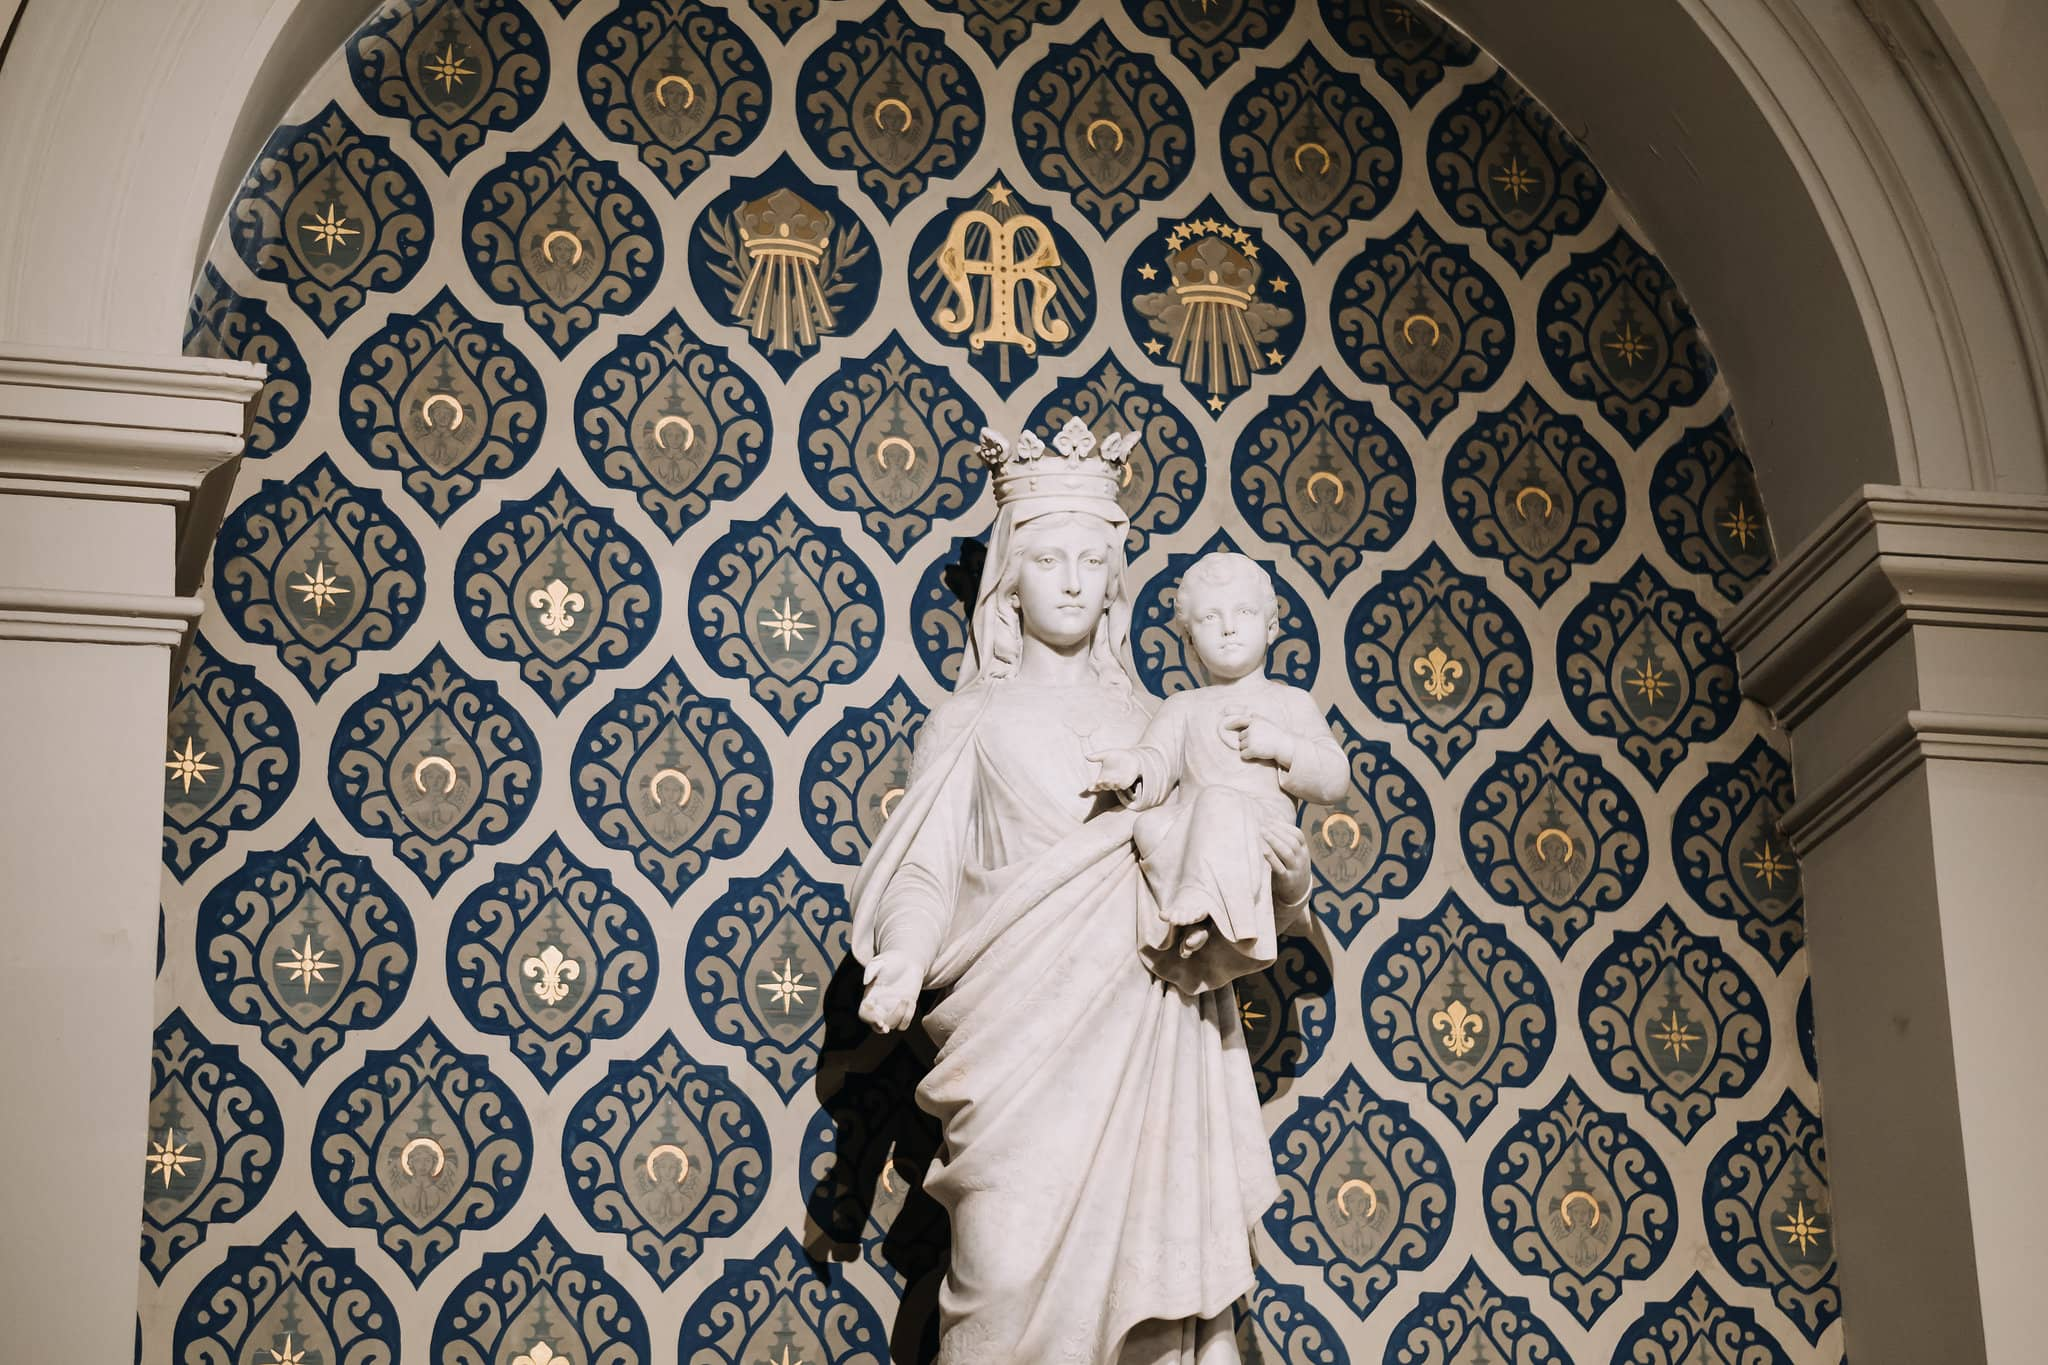 st-anne-statue-architecture-st-francis-de-sales-church-new-york-city.jpg